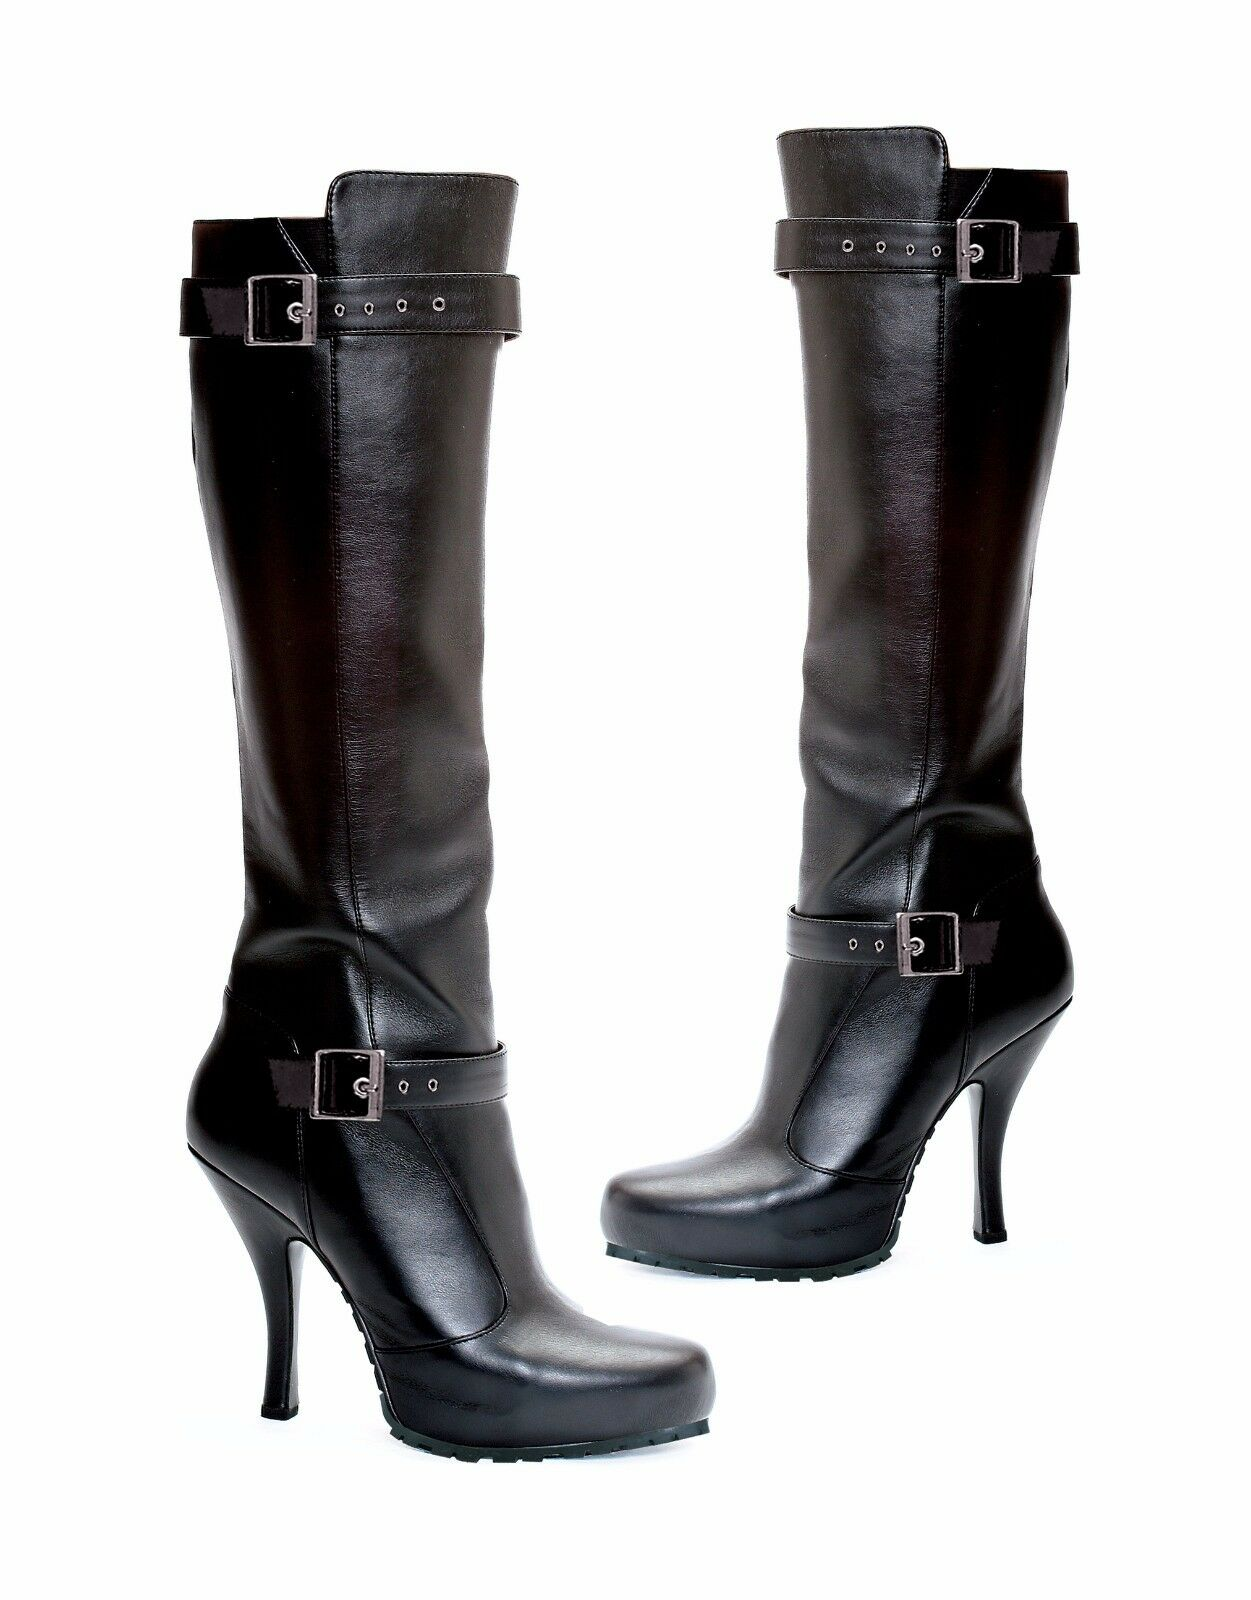 Black Knee High Boots Buckle Detail 1/2